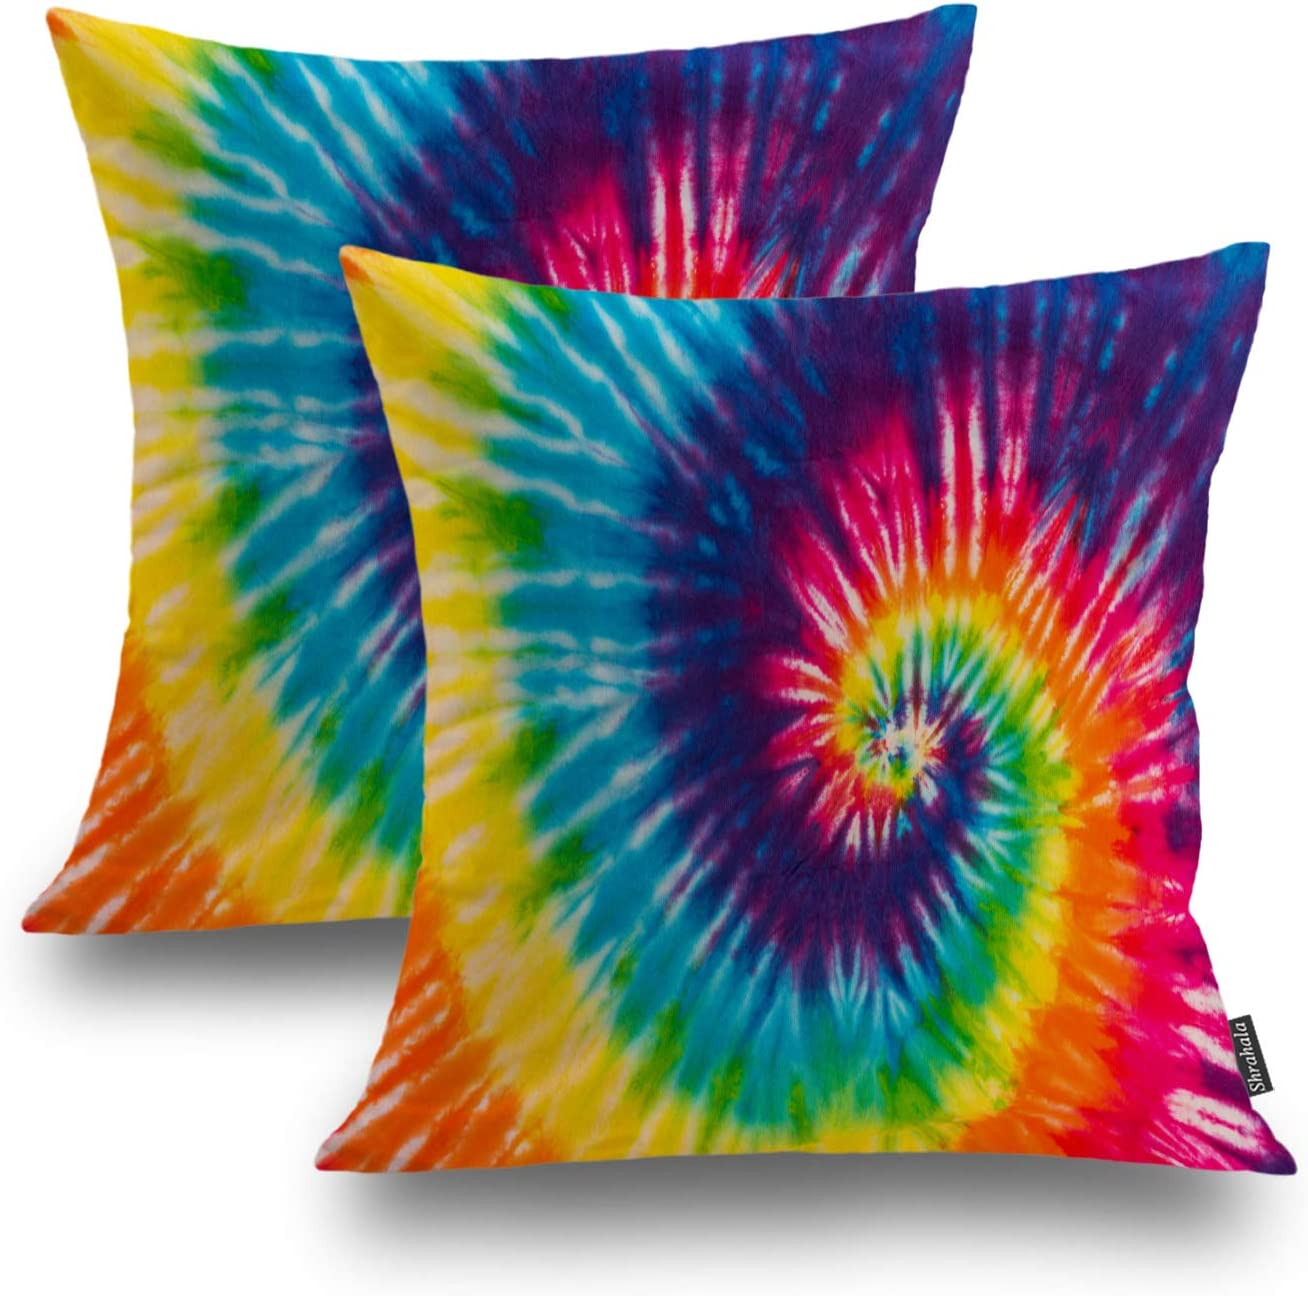 Shrahala Fashion Decorative Pillow Covers 18x18 Set of 2, 1970s Colorful Psychedelic Tie Dye Design Abstract Pattern Cushion Case for Sofa Bedroom Car Throw Pillow Covers, Square 18 Inches, Red Dye